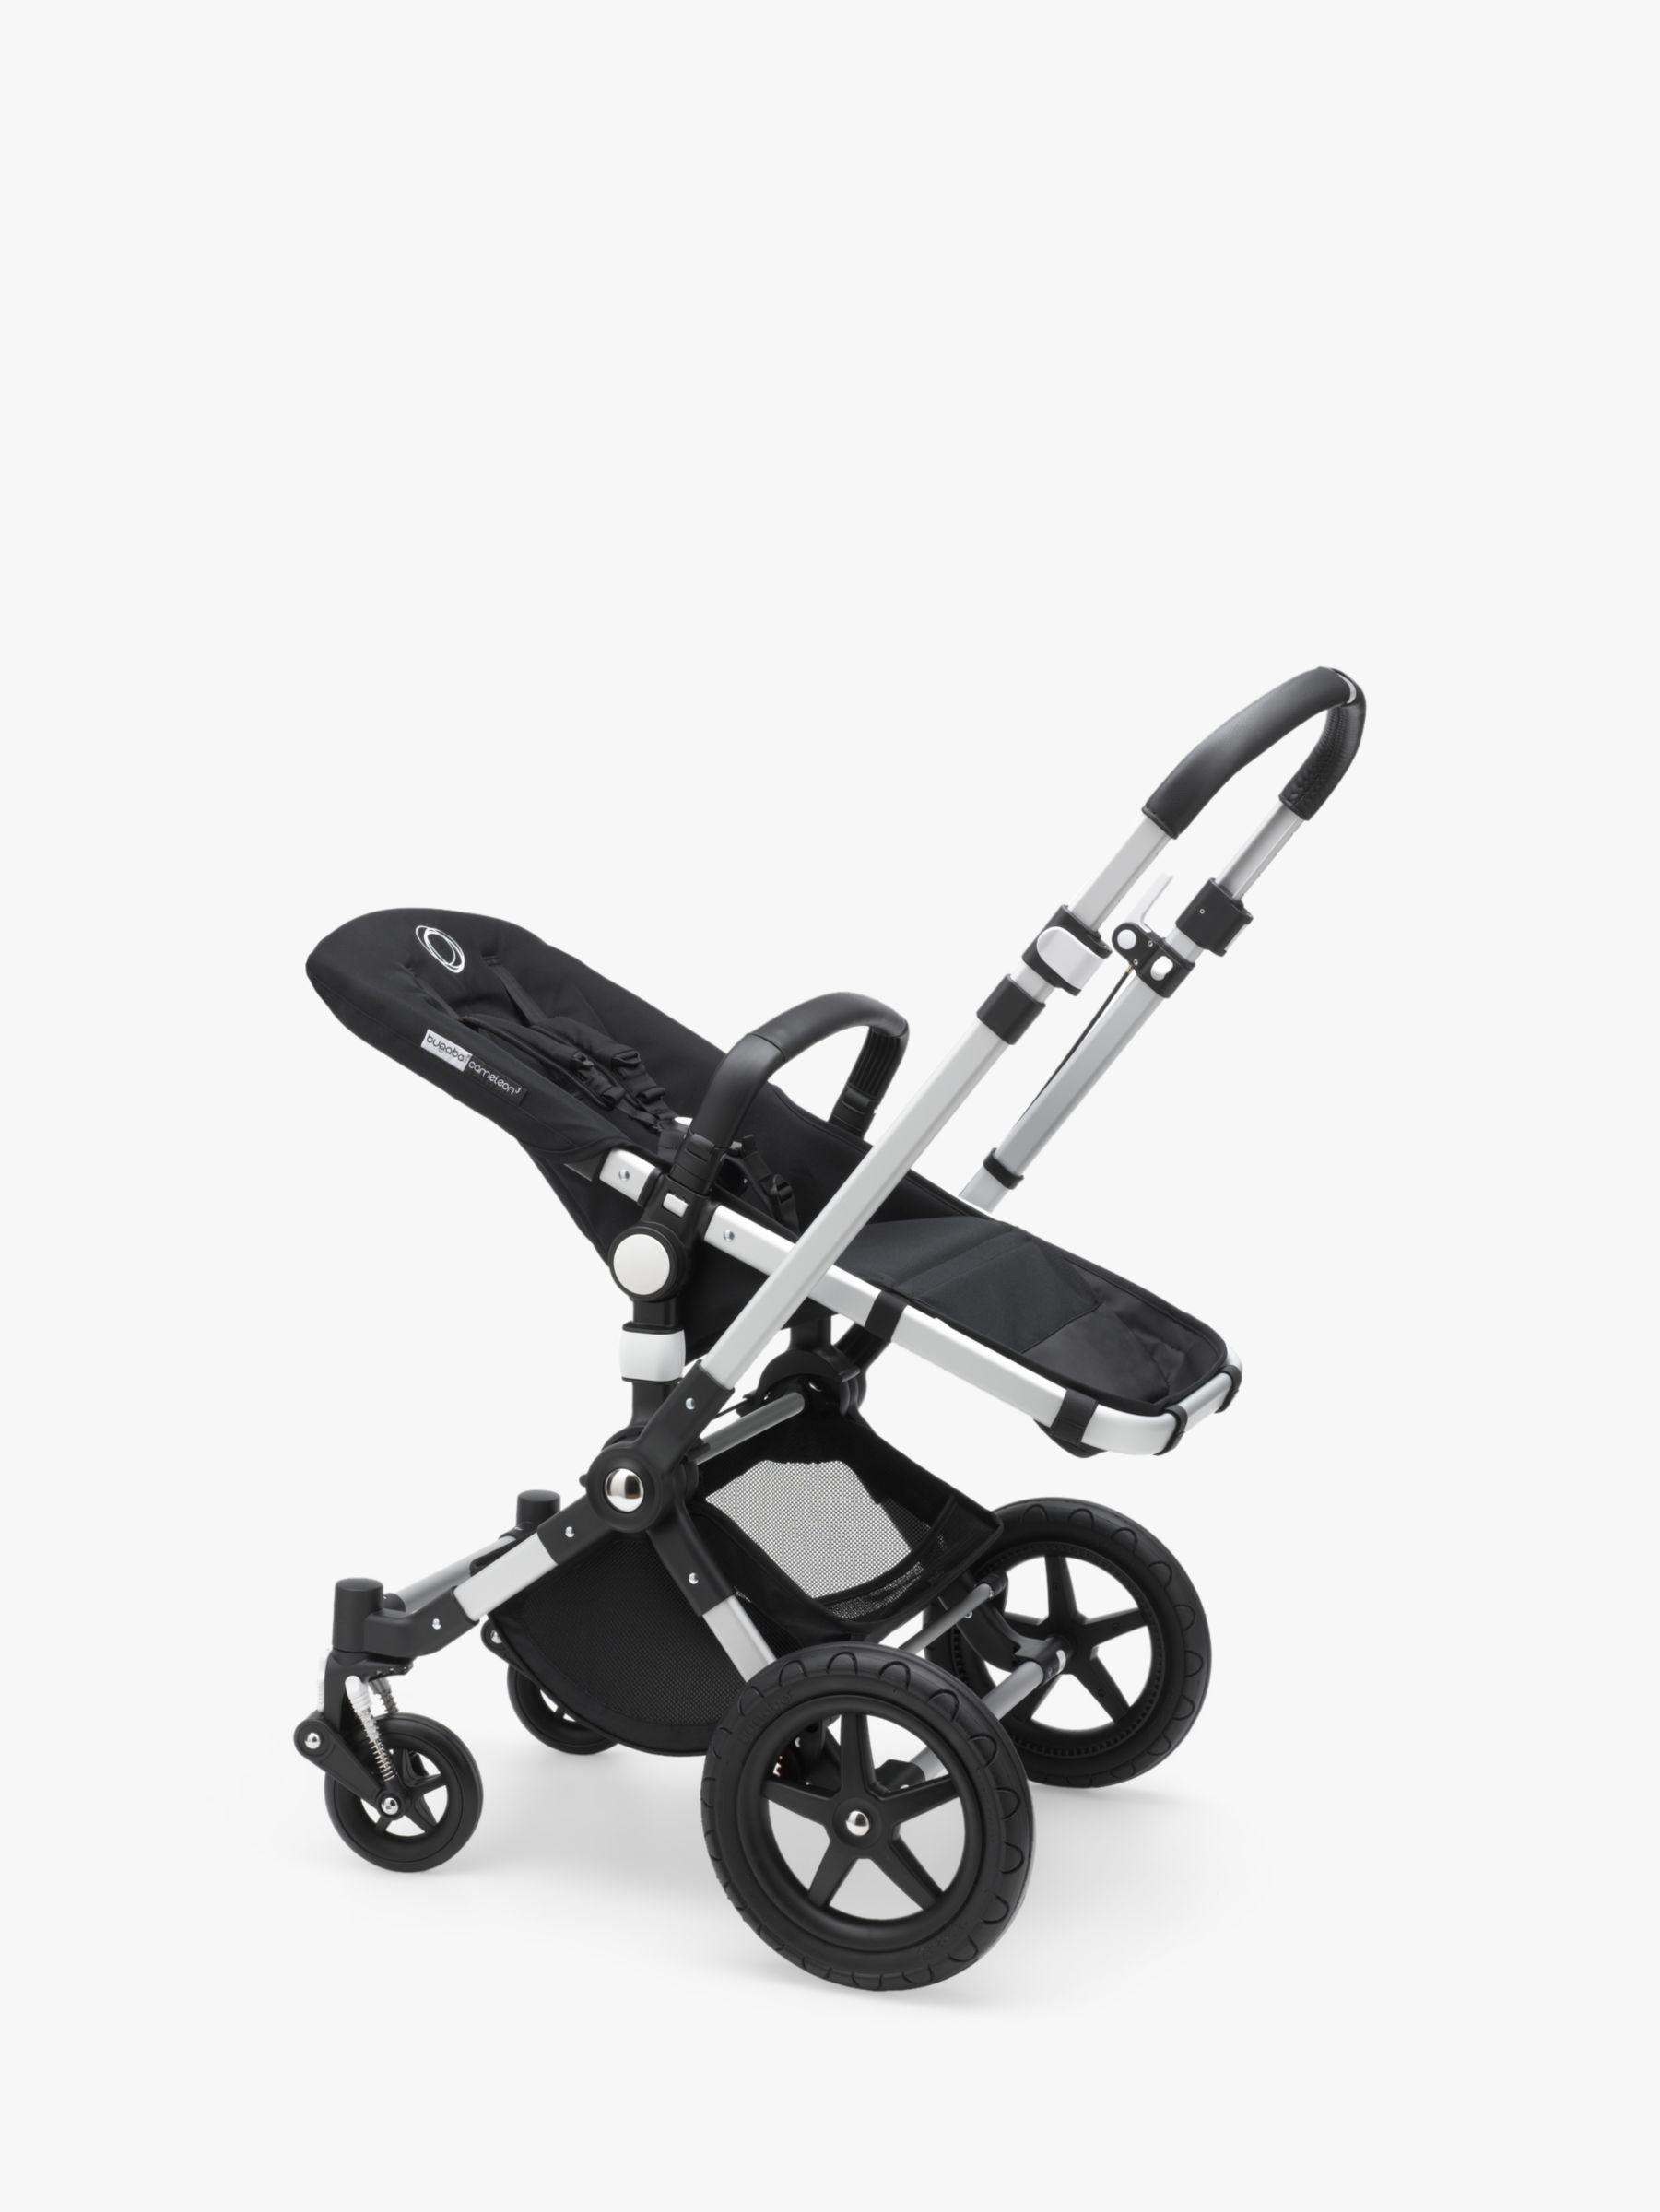 Bugaboo Bugaboo Cameleon3 Plus Pushchair Base Unit and Carrycot Base Aluminium/Black